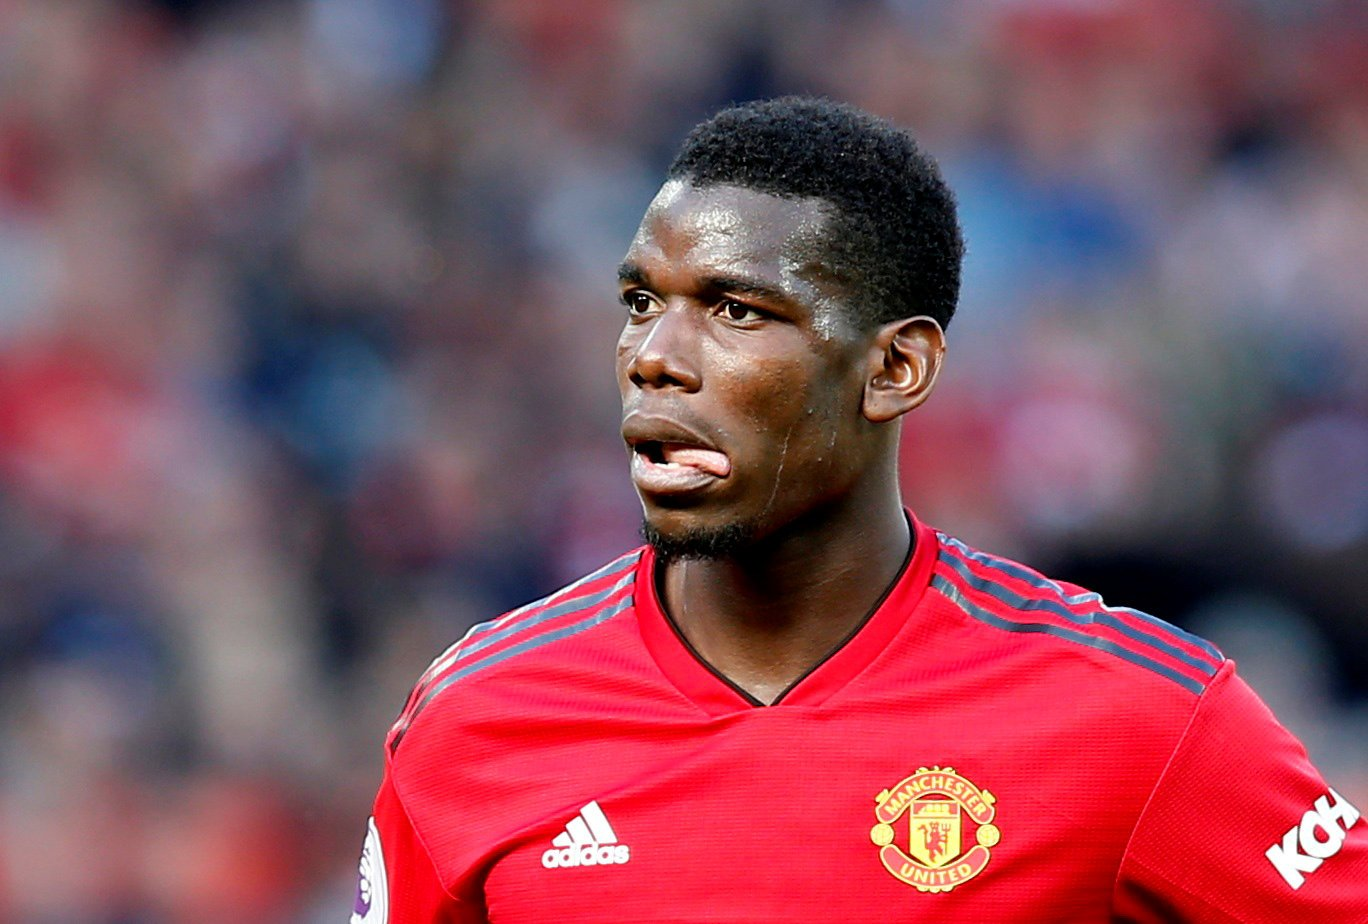 Manchester United: Fans react to Paul Pogba missing Manchester derby